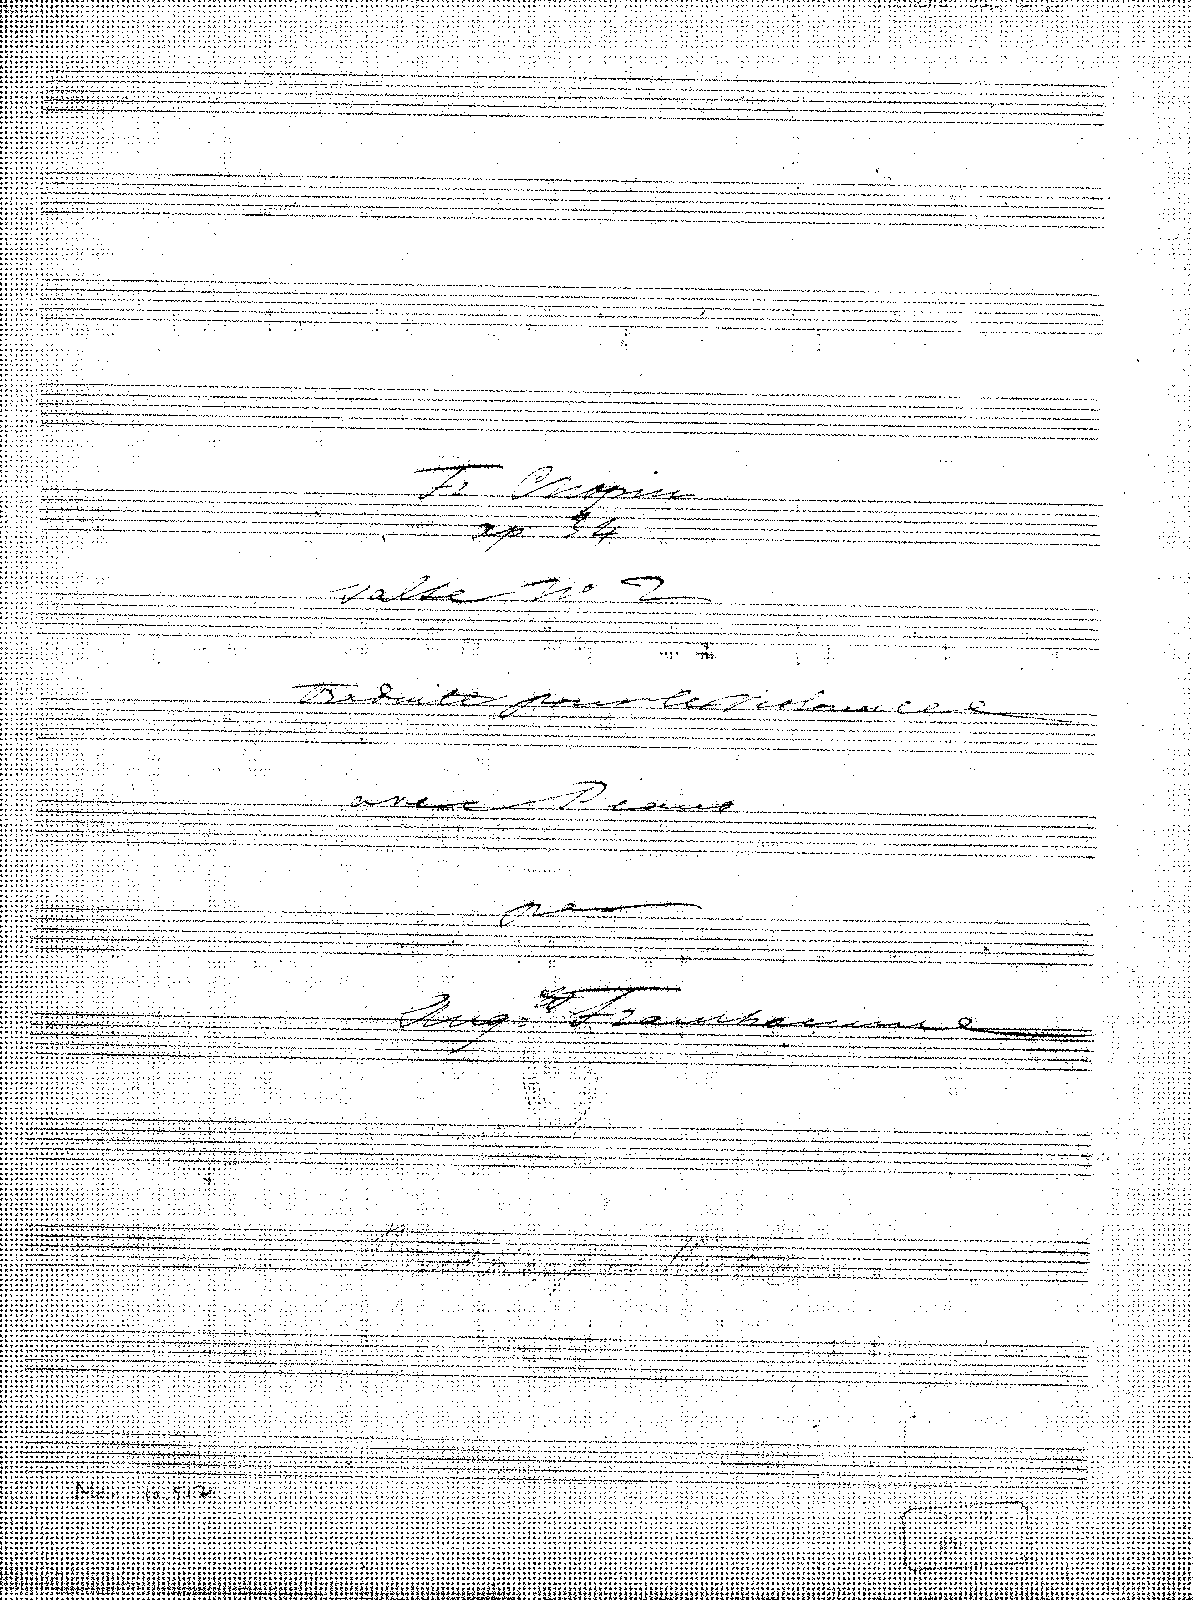 PMLP02370-Chopin - Waltz No2 Op34 (Franchomme) for Cello and Piano manuscript.pdf